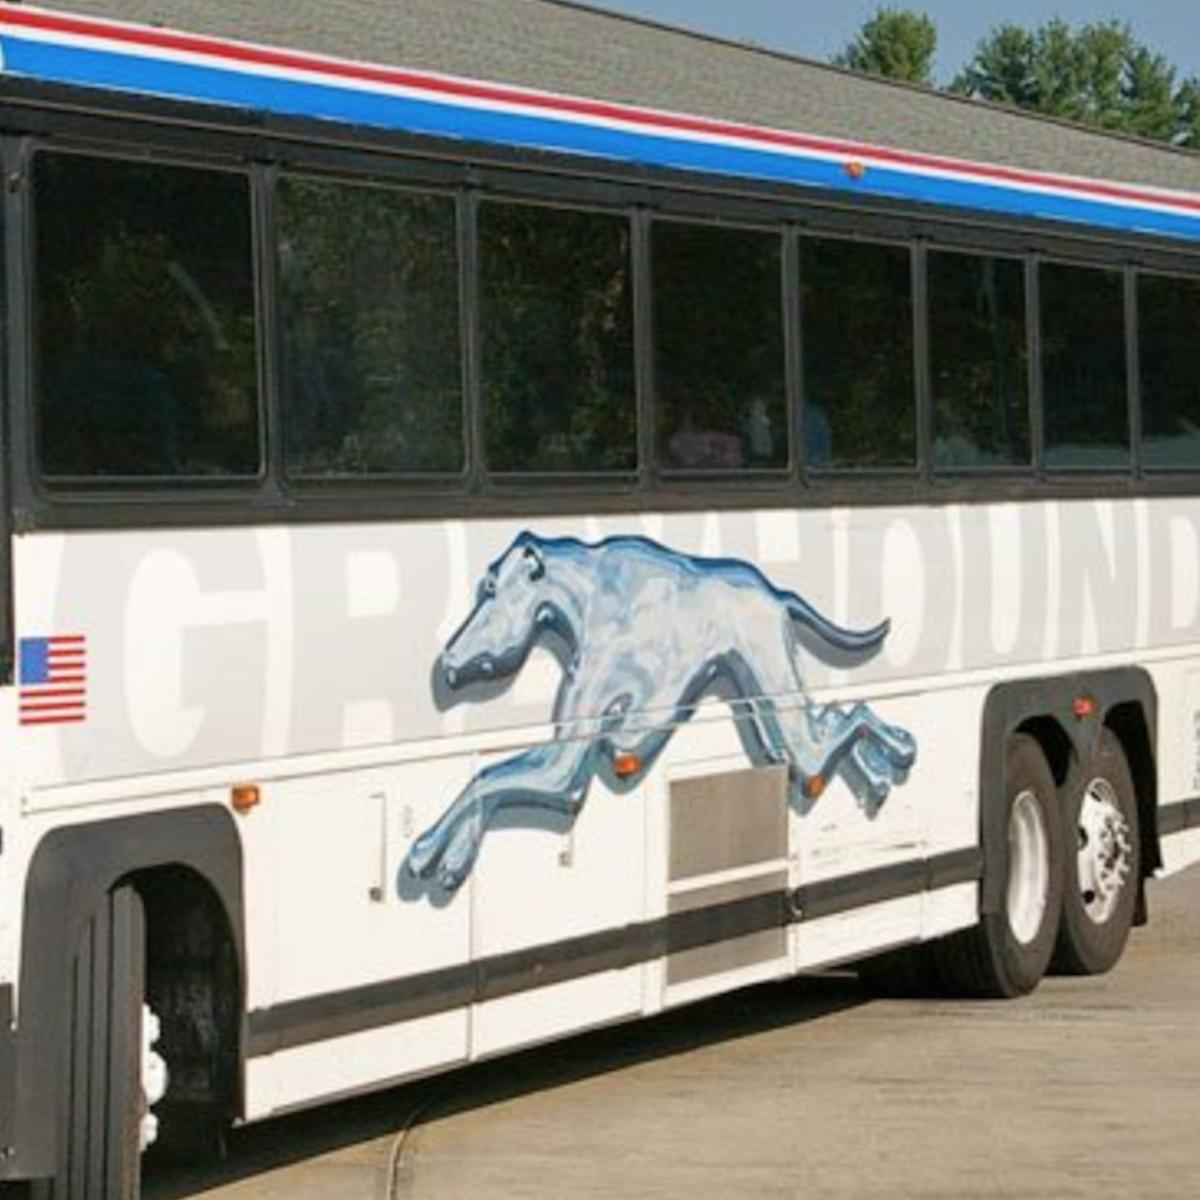 Close up photo of Greyhound bus